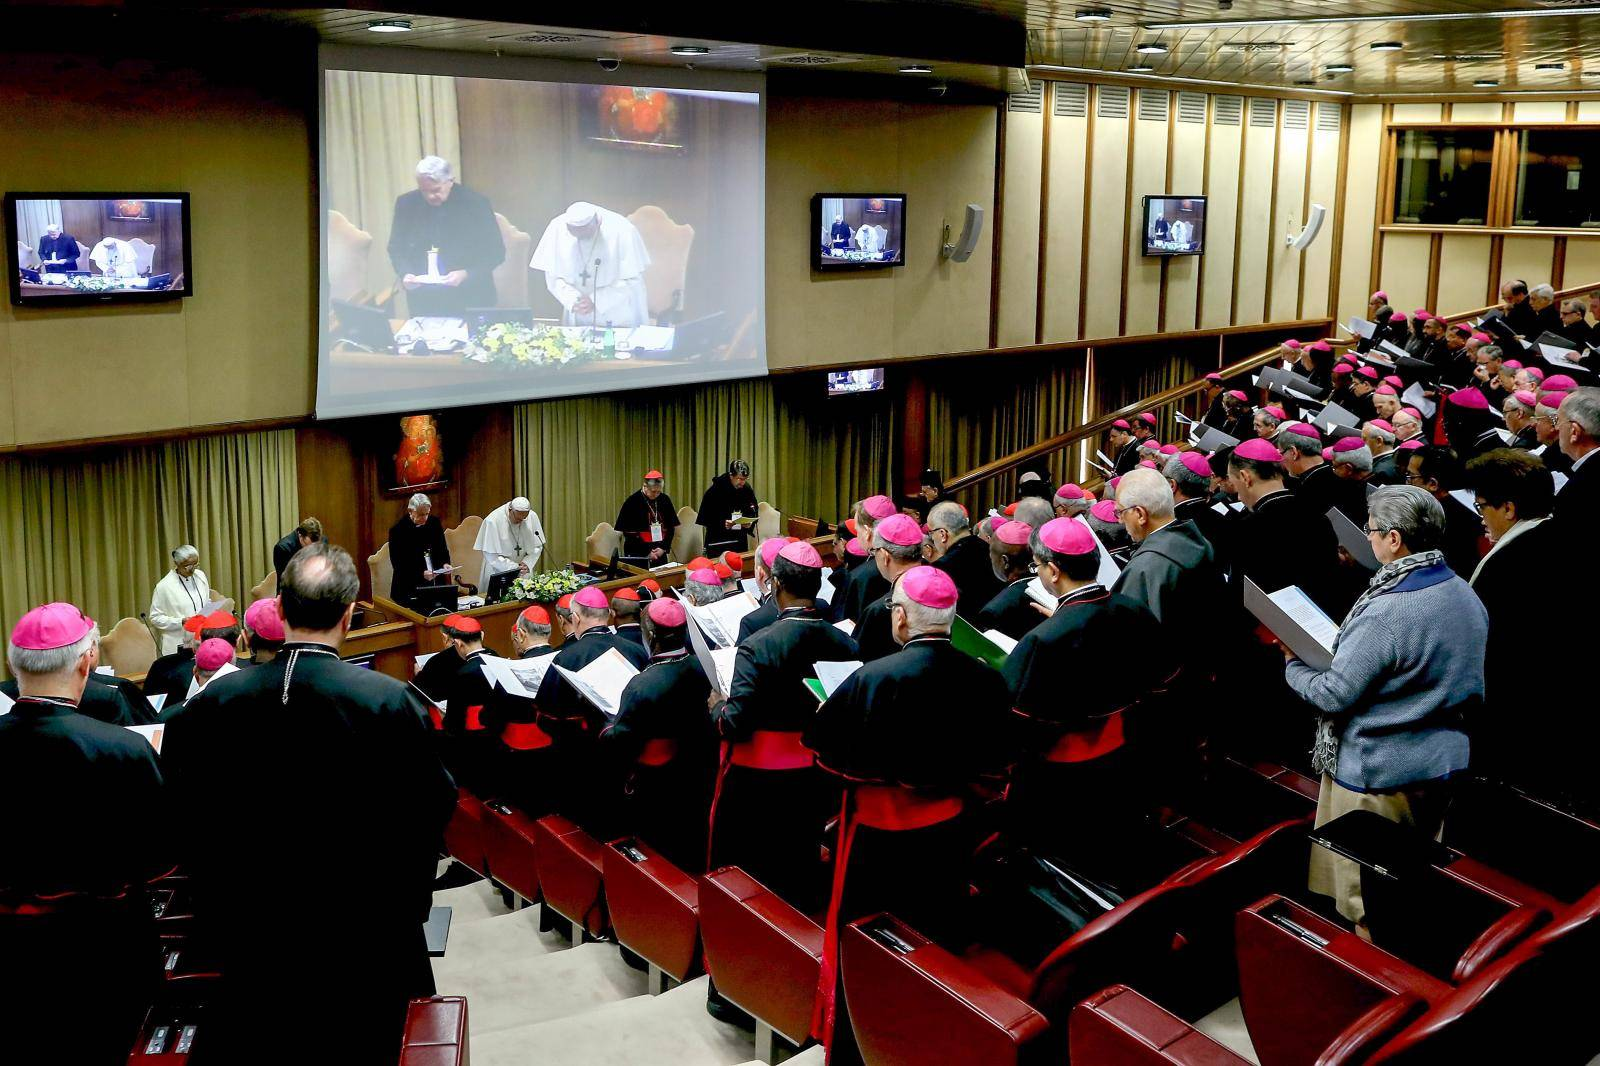 February 21, 2019 : Opening session of  'The Protection Of Minors In The Church' meeting at the Synod Hall in Vatican City, Vatican.